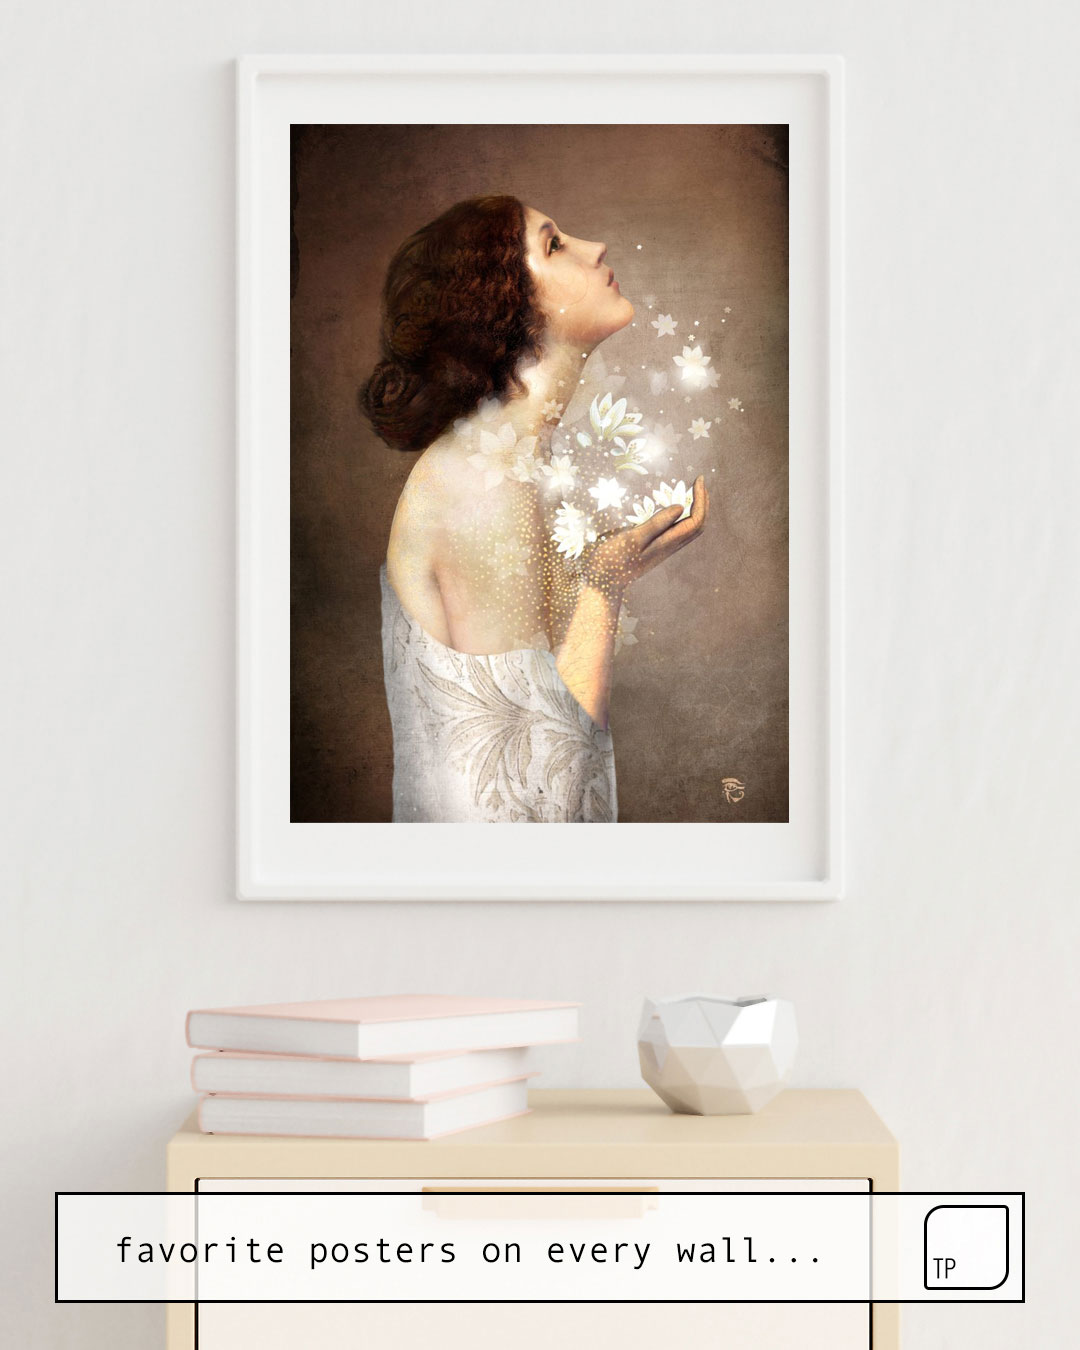 The photo shows an example of furnishing with the motif WISH by Christian Schloe as mural